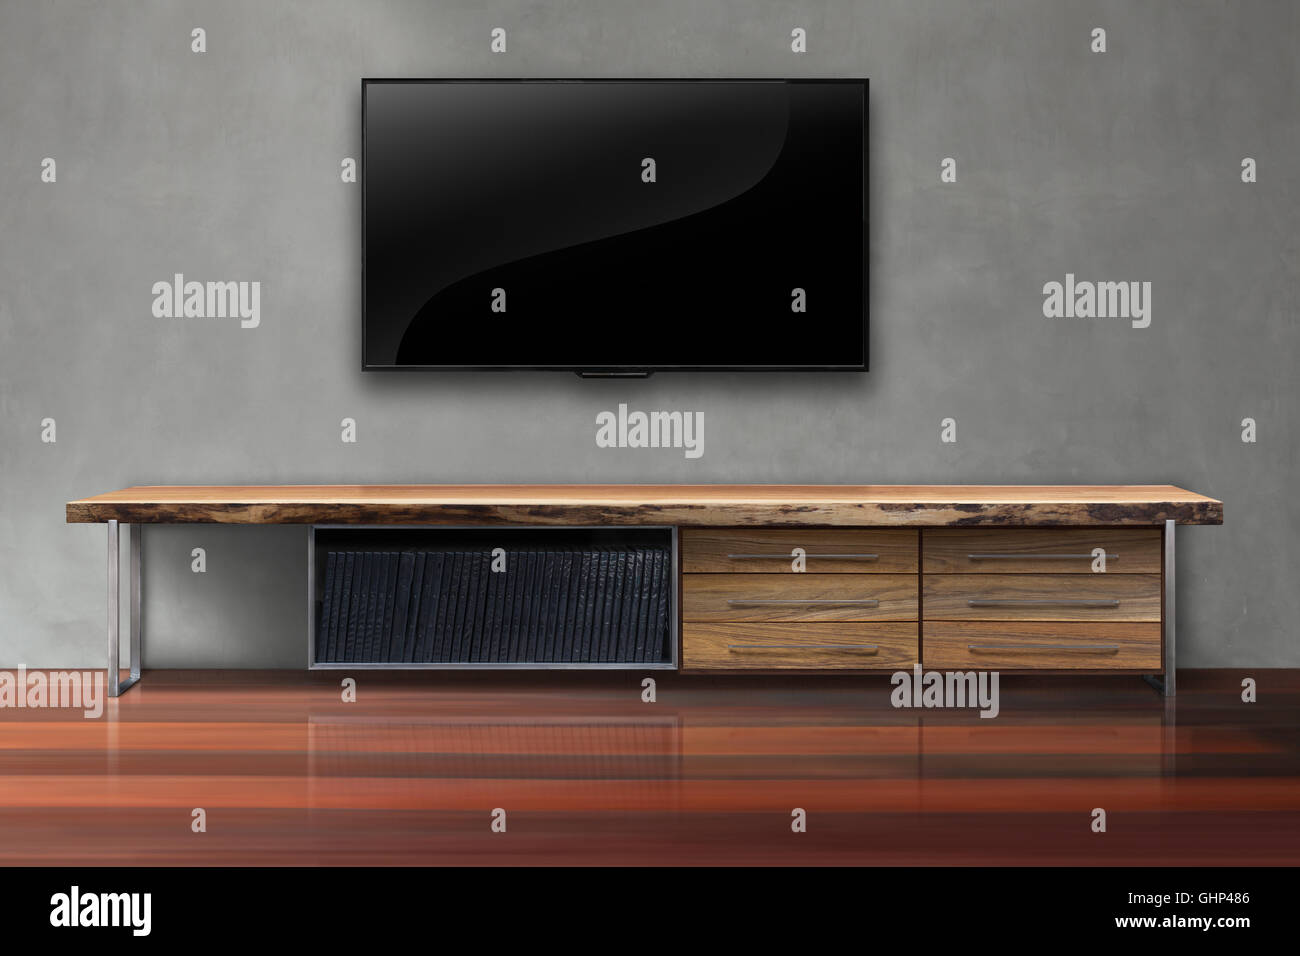 Led Tv On Concrete Wall With Wooden Table Living Room Modern Loft